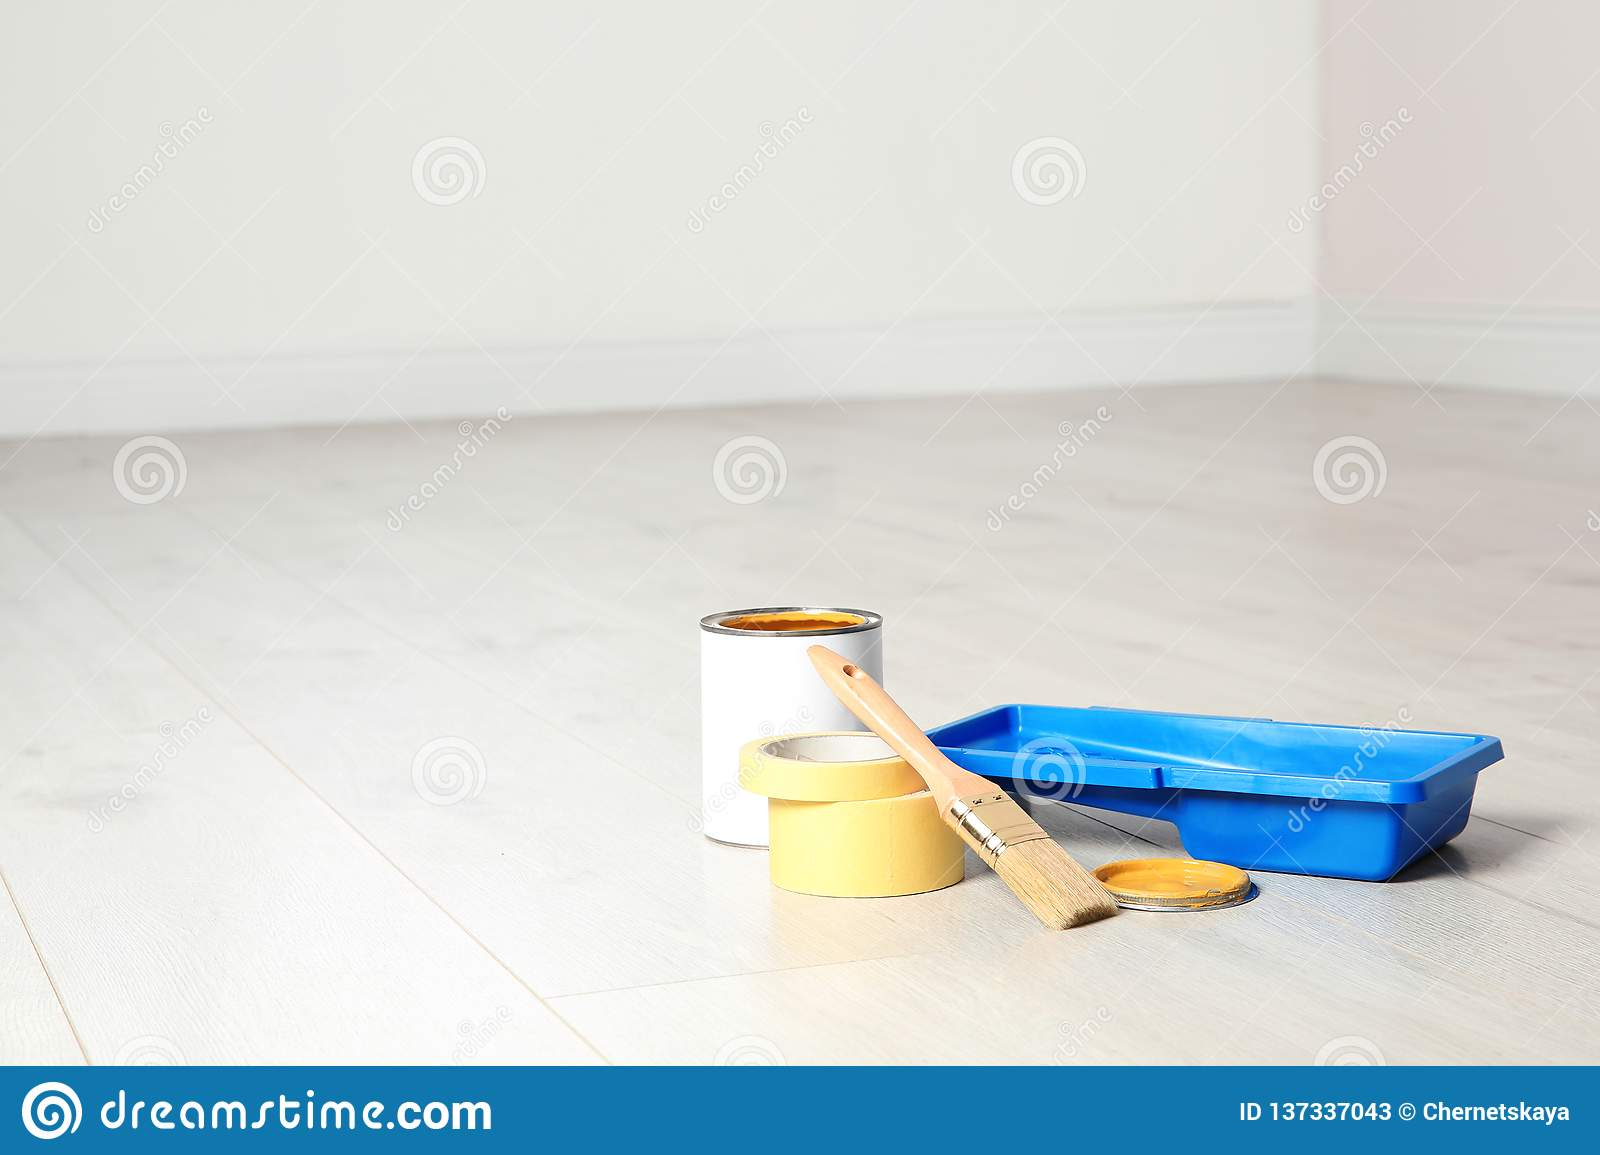 Can of paint and decorator tools on wooden floor indoors.